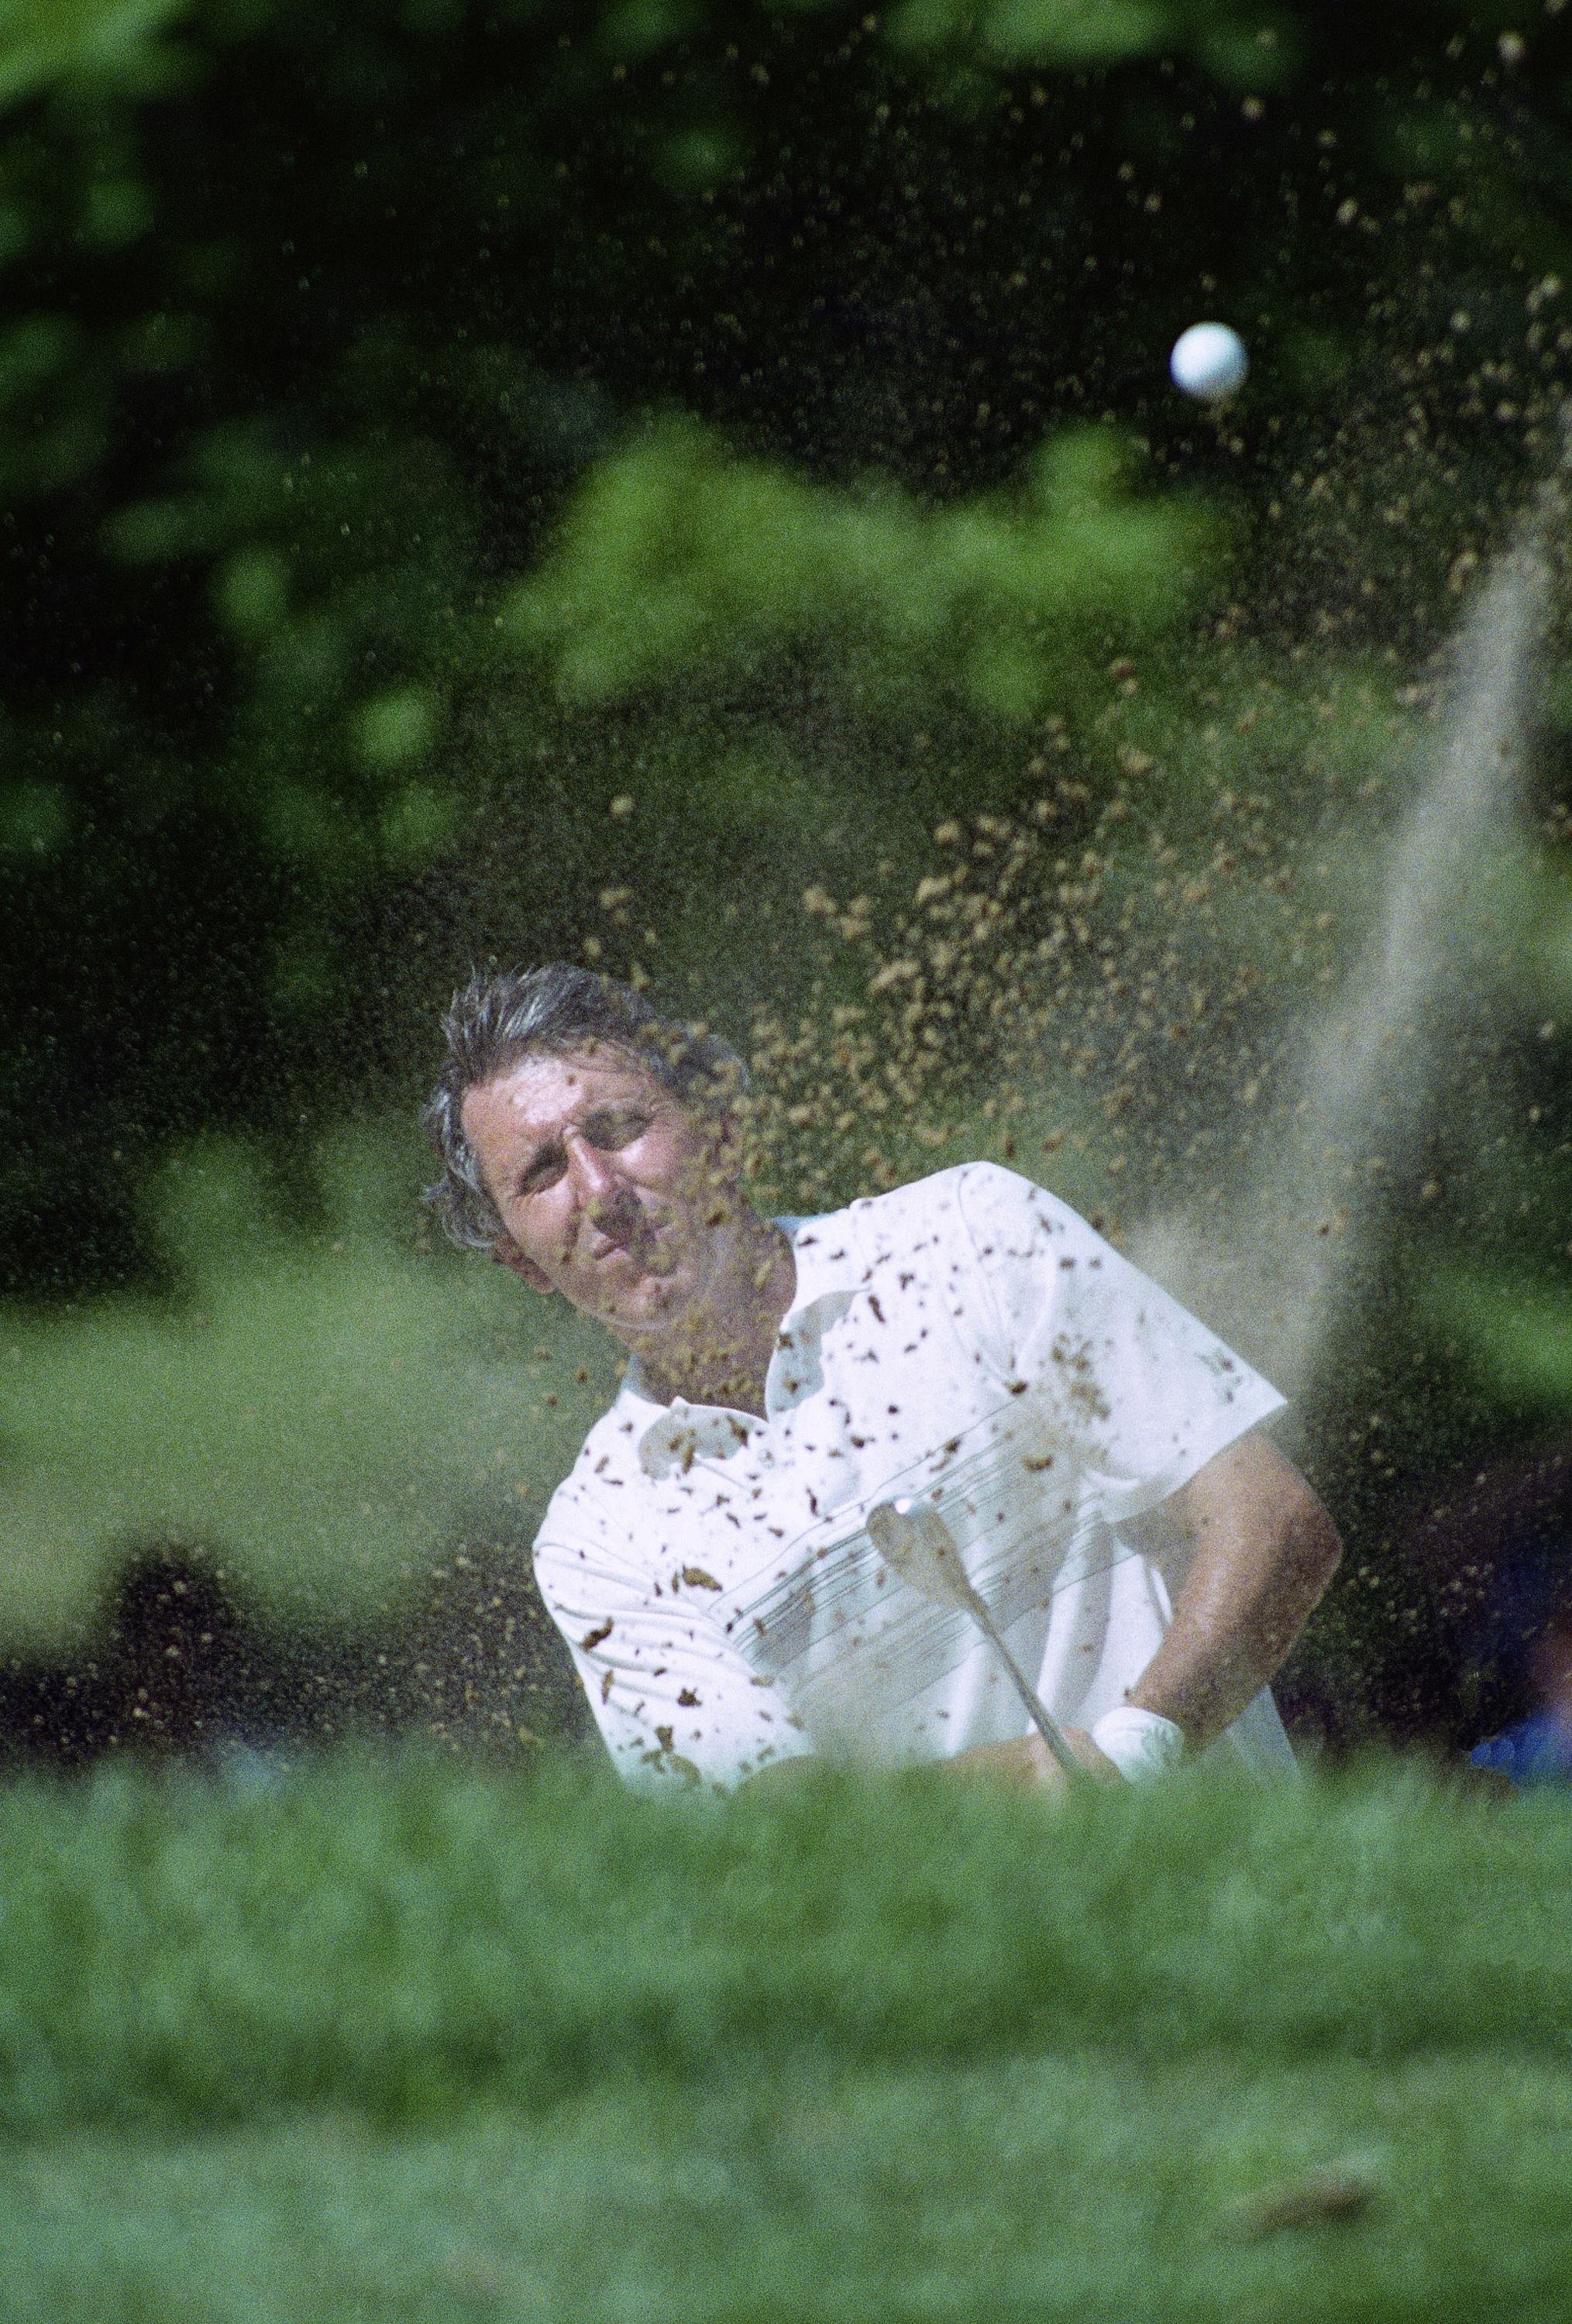 Hale Irwin blasts out of a trap on the 14th hole at Medinah Country Club on June 19, 1990 during his US Open playoff with Mike Donald. The two golfers ended up tied after 18 playoff holes and Irwin birdied the 1st sudden death hole to give him his third Open title.